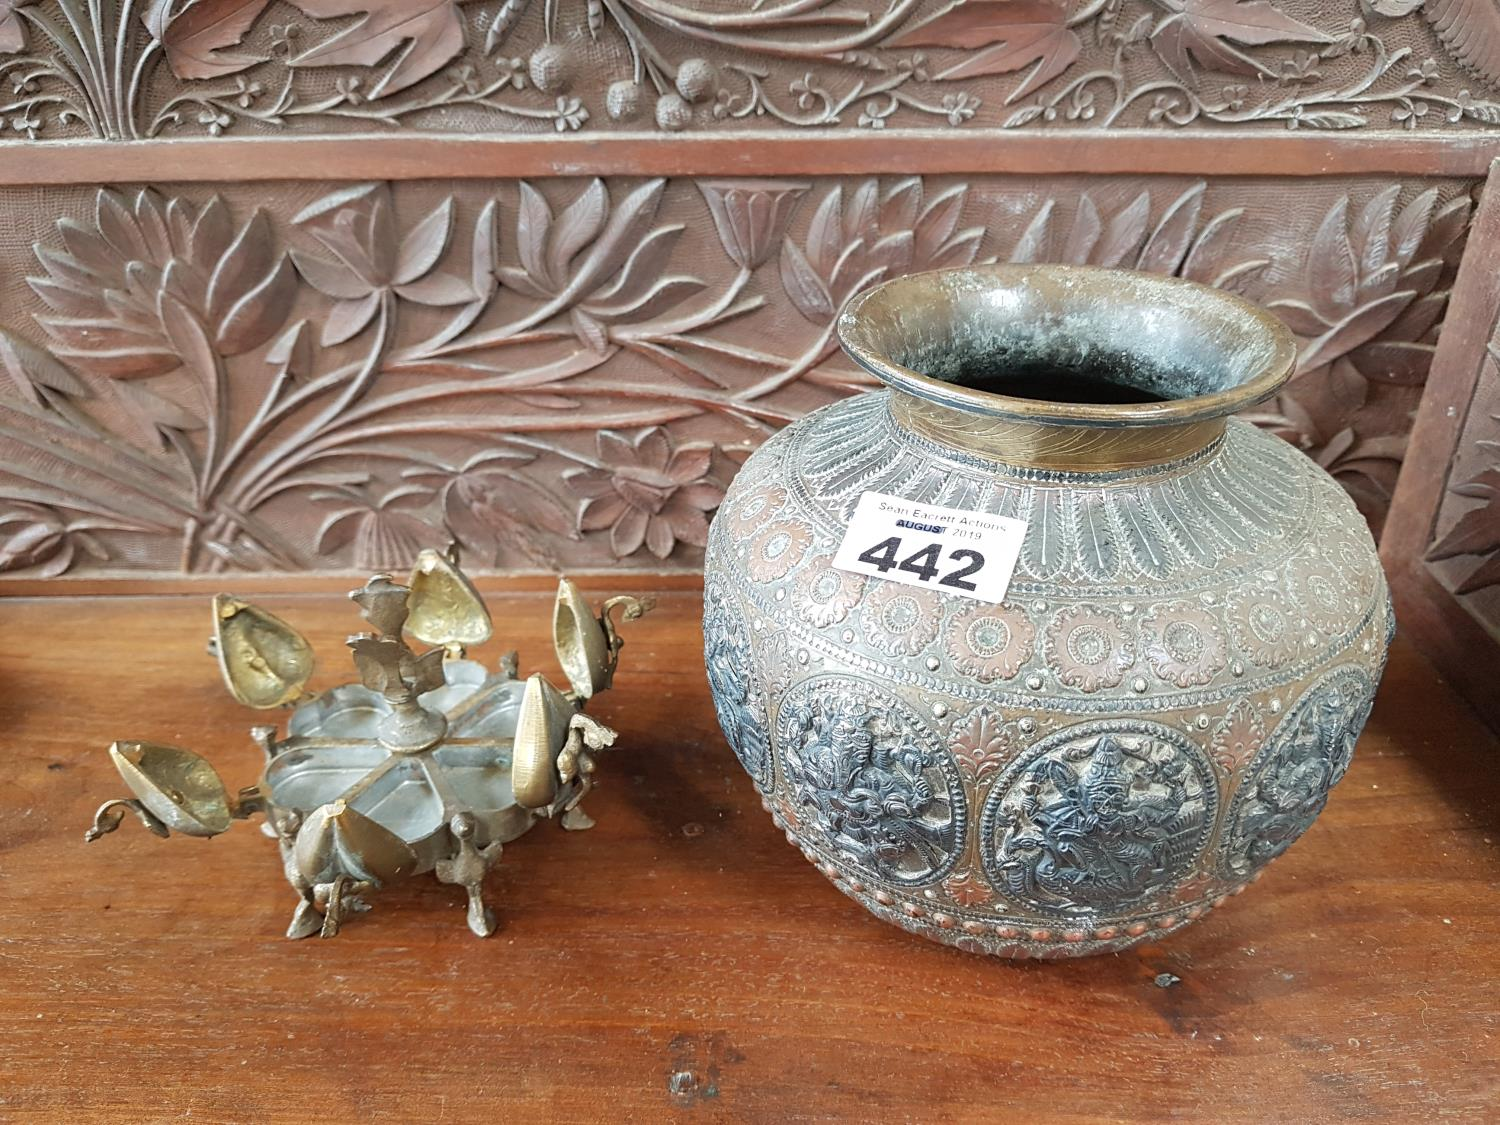 Lot 442 - An early 20th Century Indian Bowl along with a spice holder.